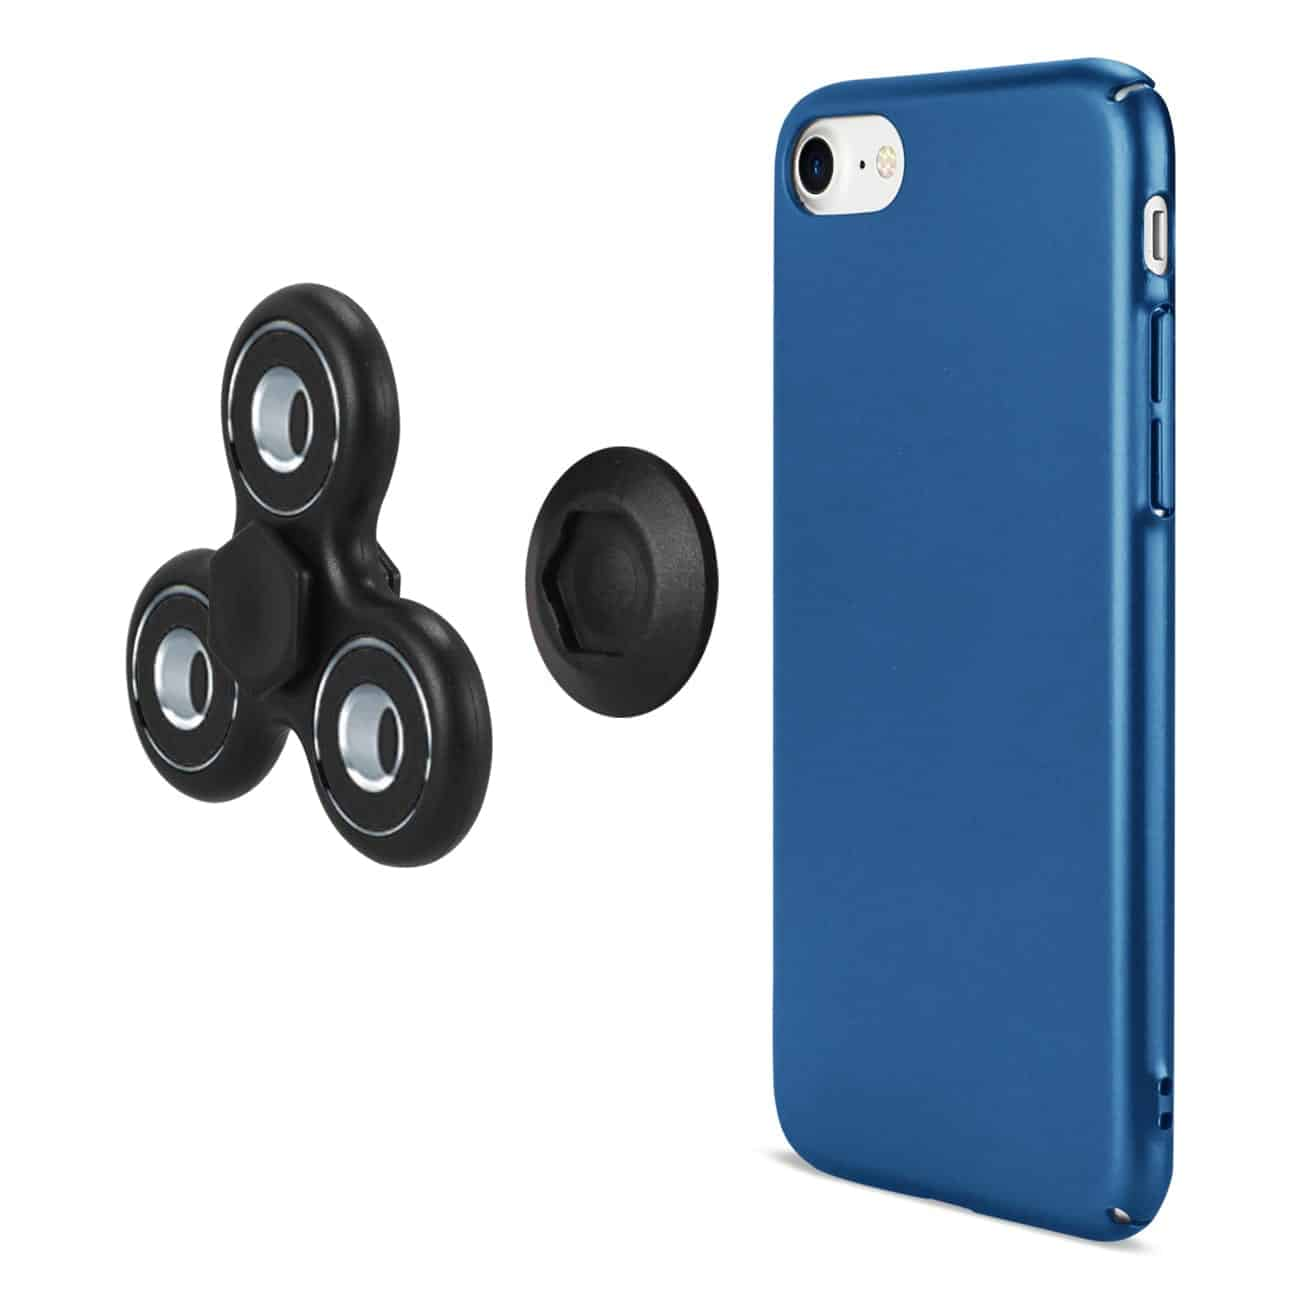 IPHONE 7/ 6/ 6S CASE WITH LED FIDGET SPINNER CLIP ON IN NAVY